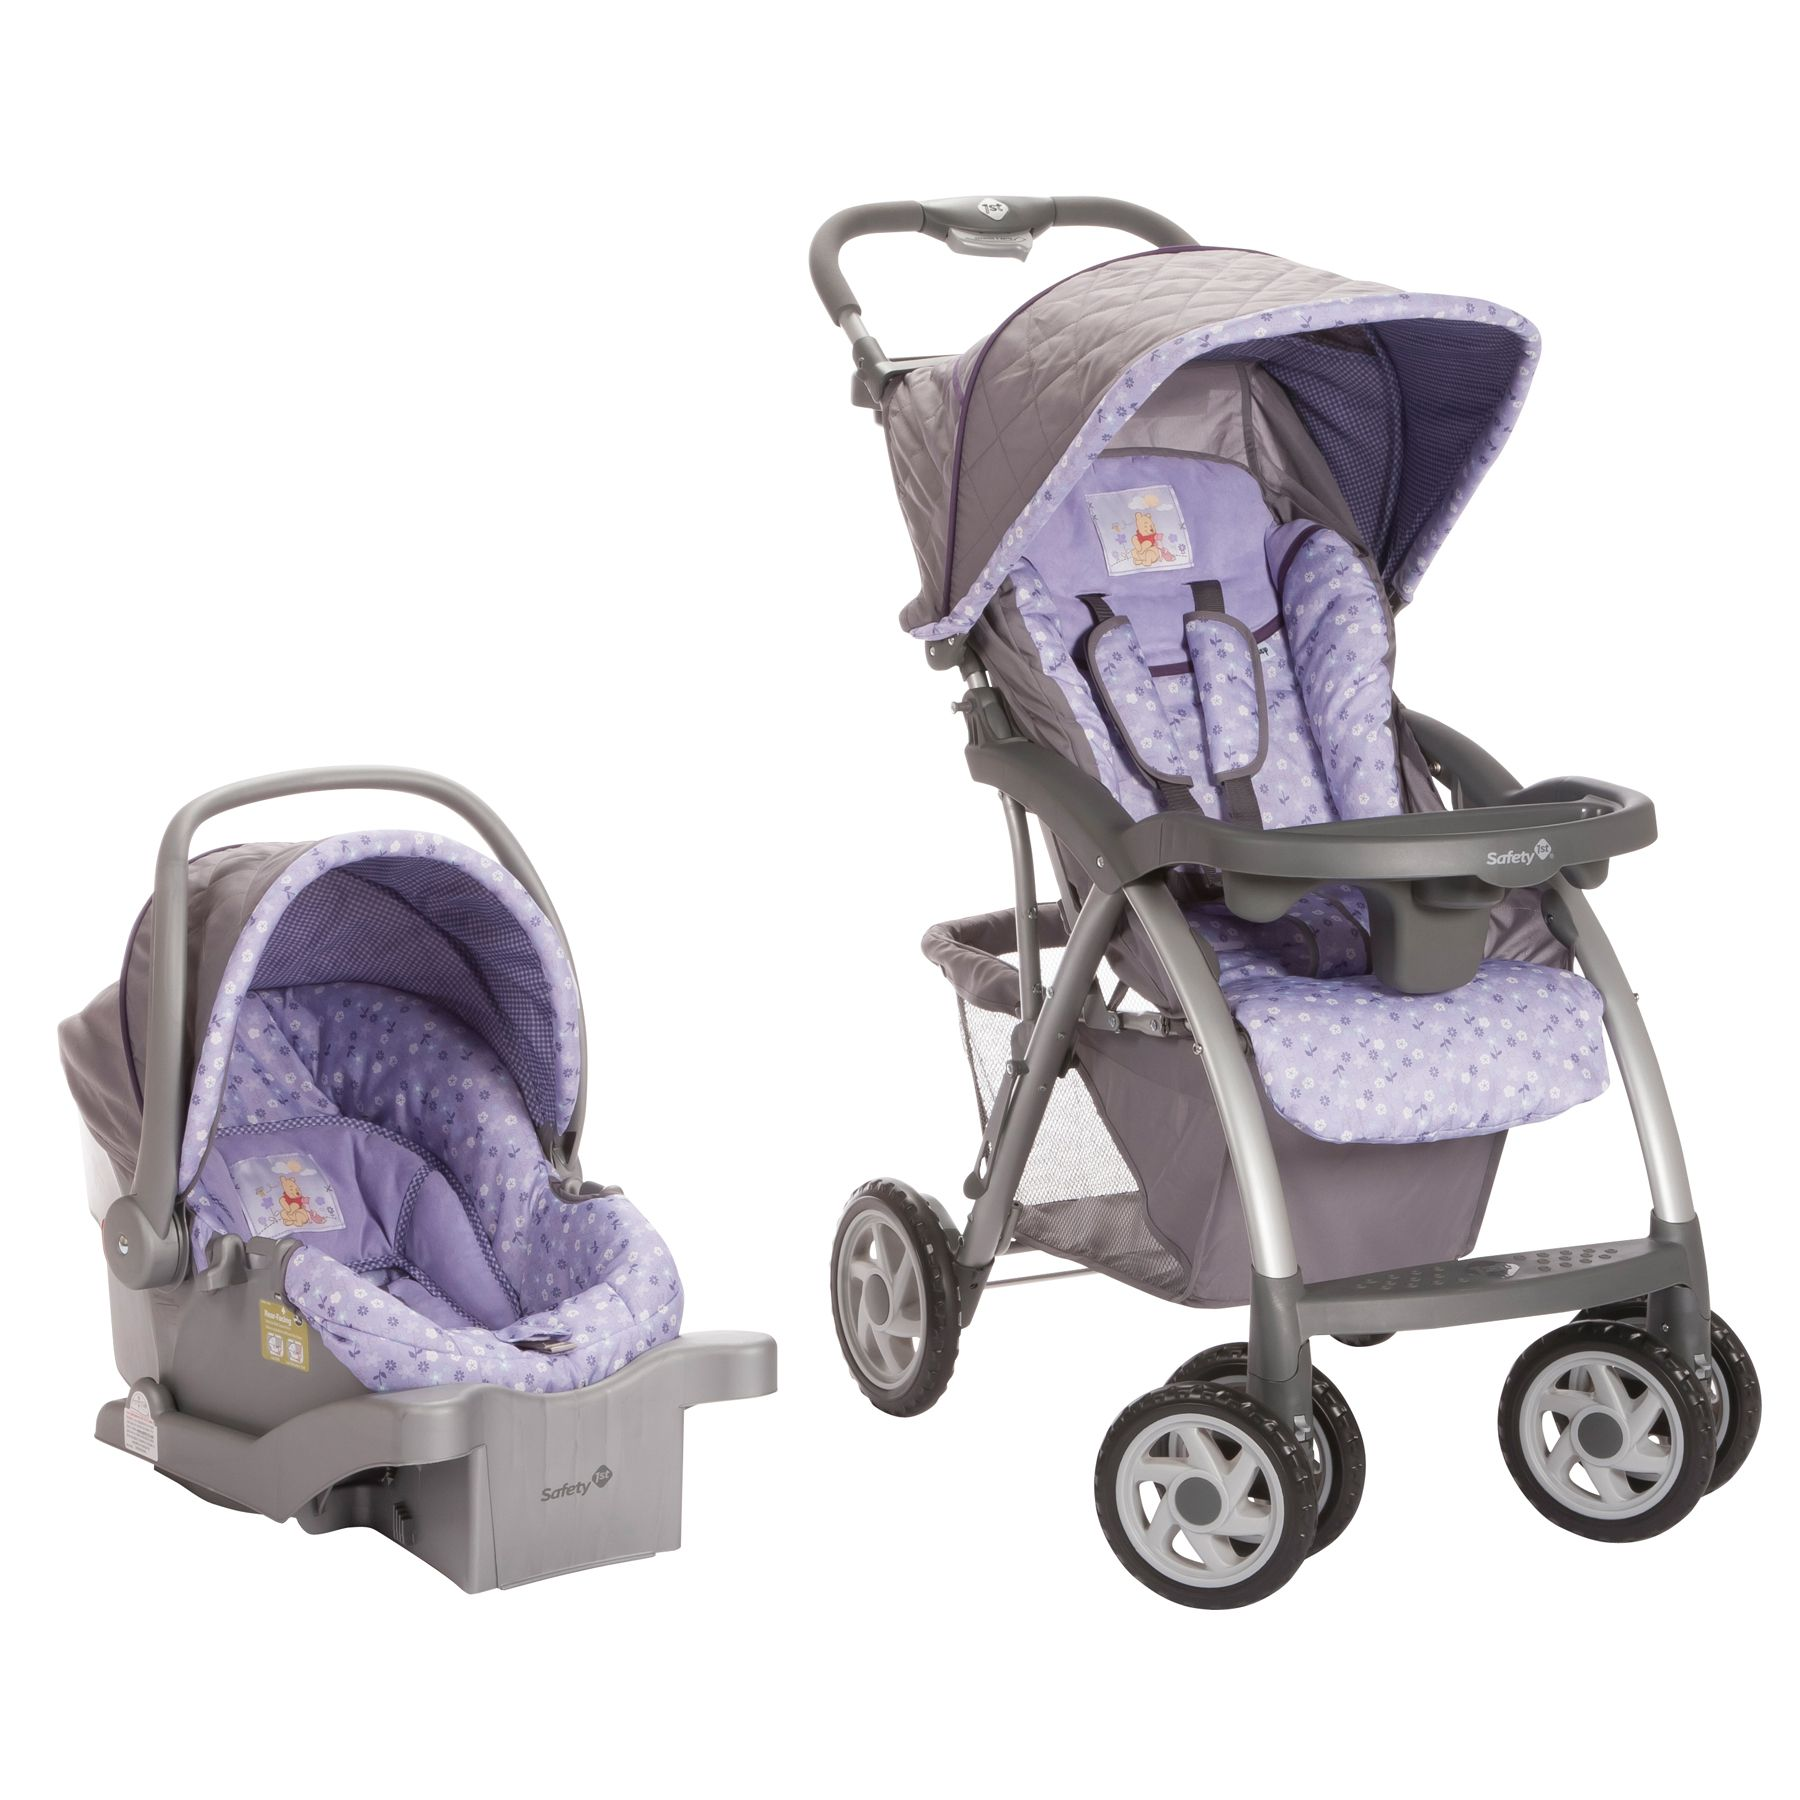 Pooh's Garden Saunter Luxe Travel System from Safety 1st